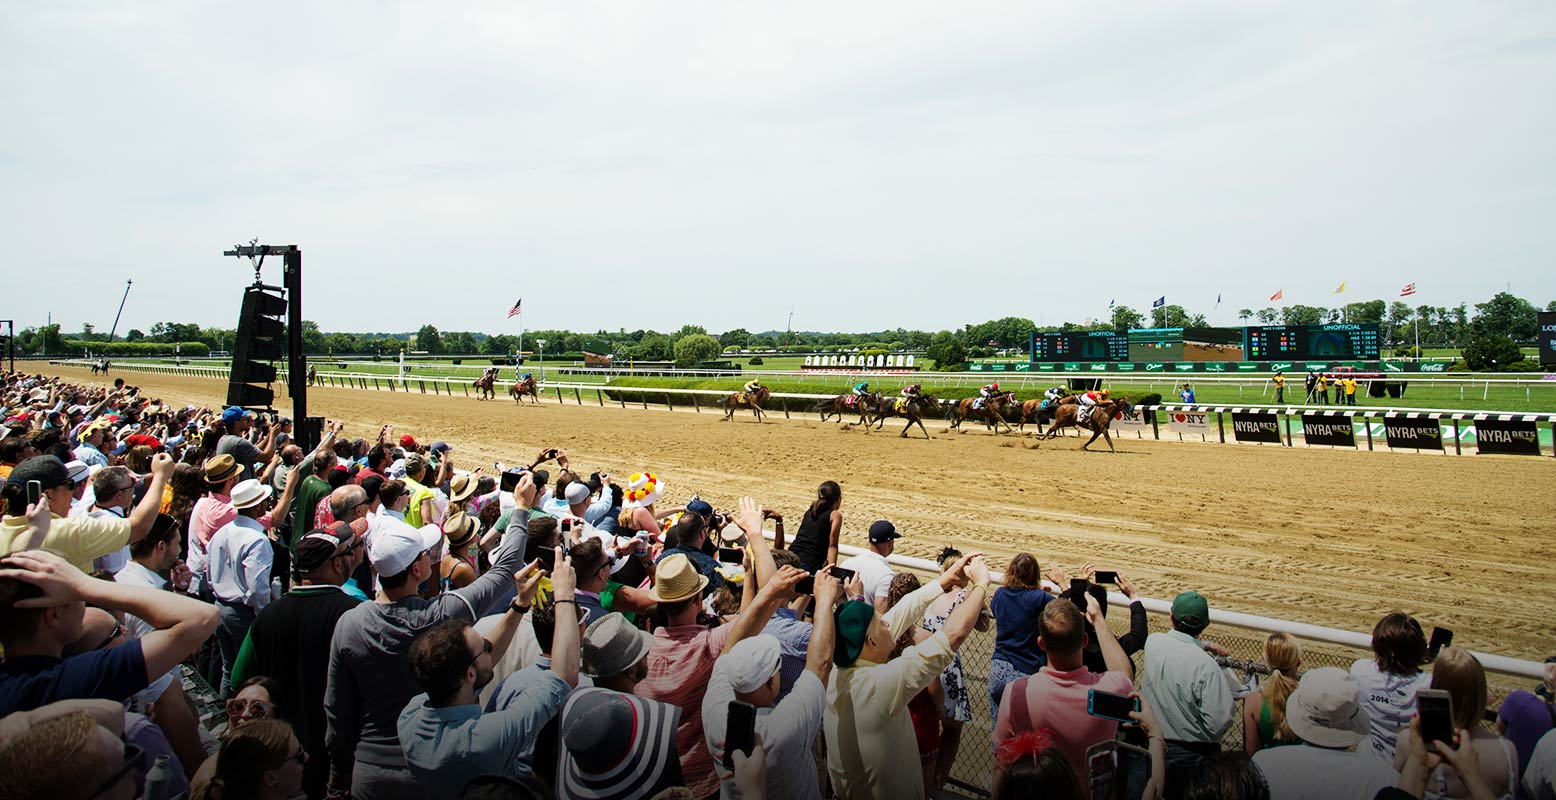 Belmont Park Race Course Nyra